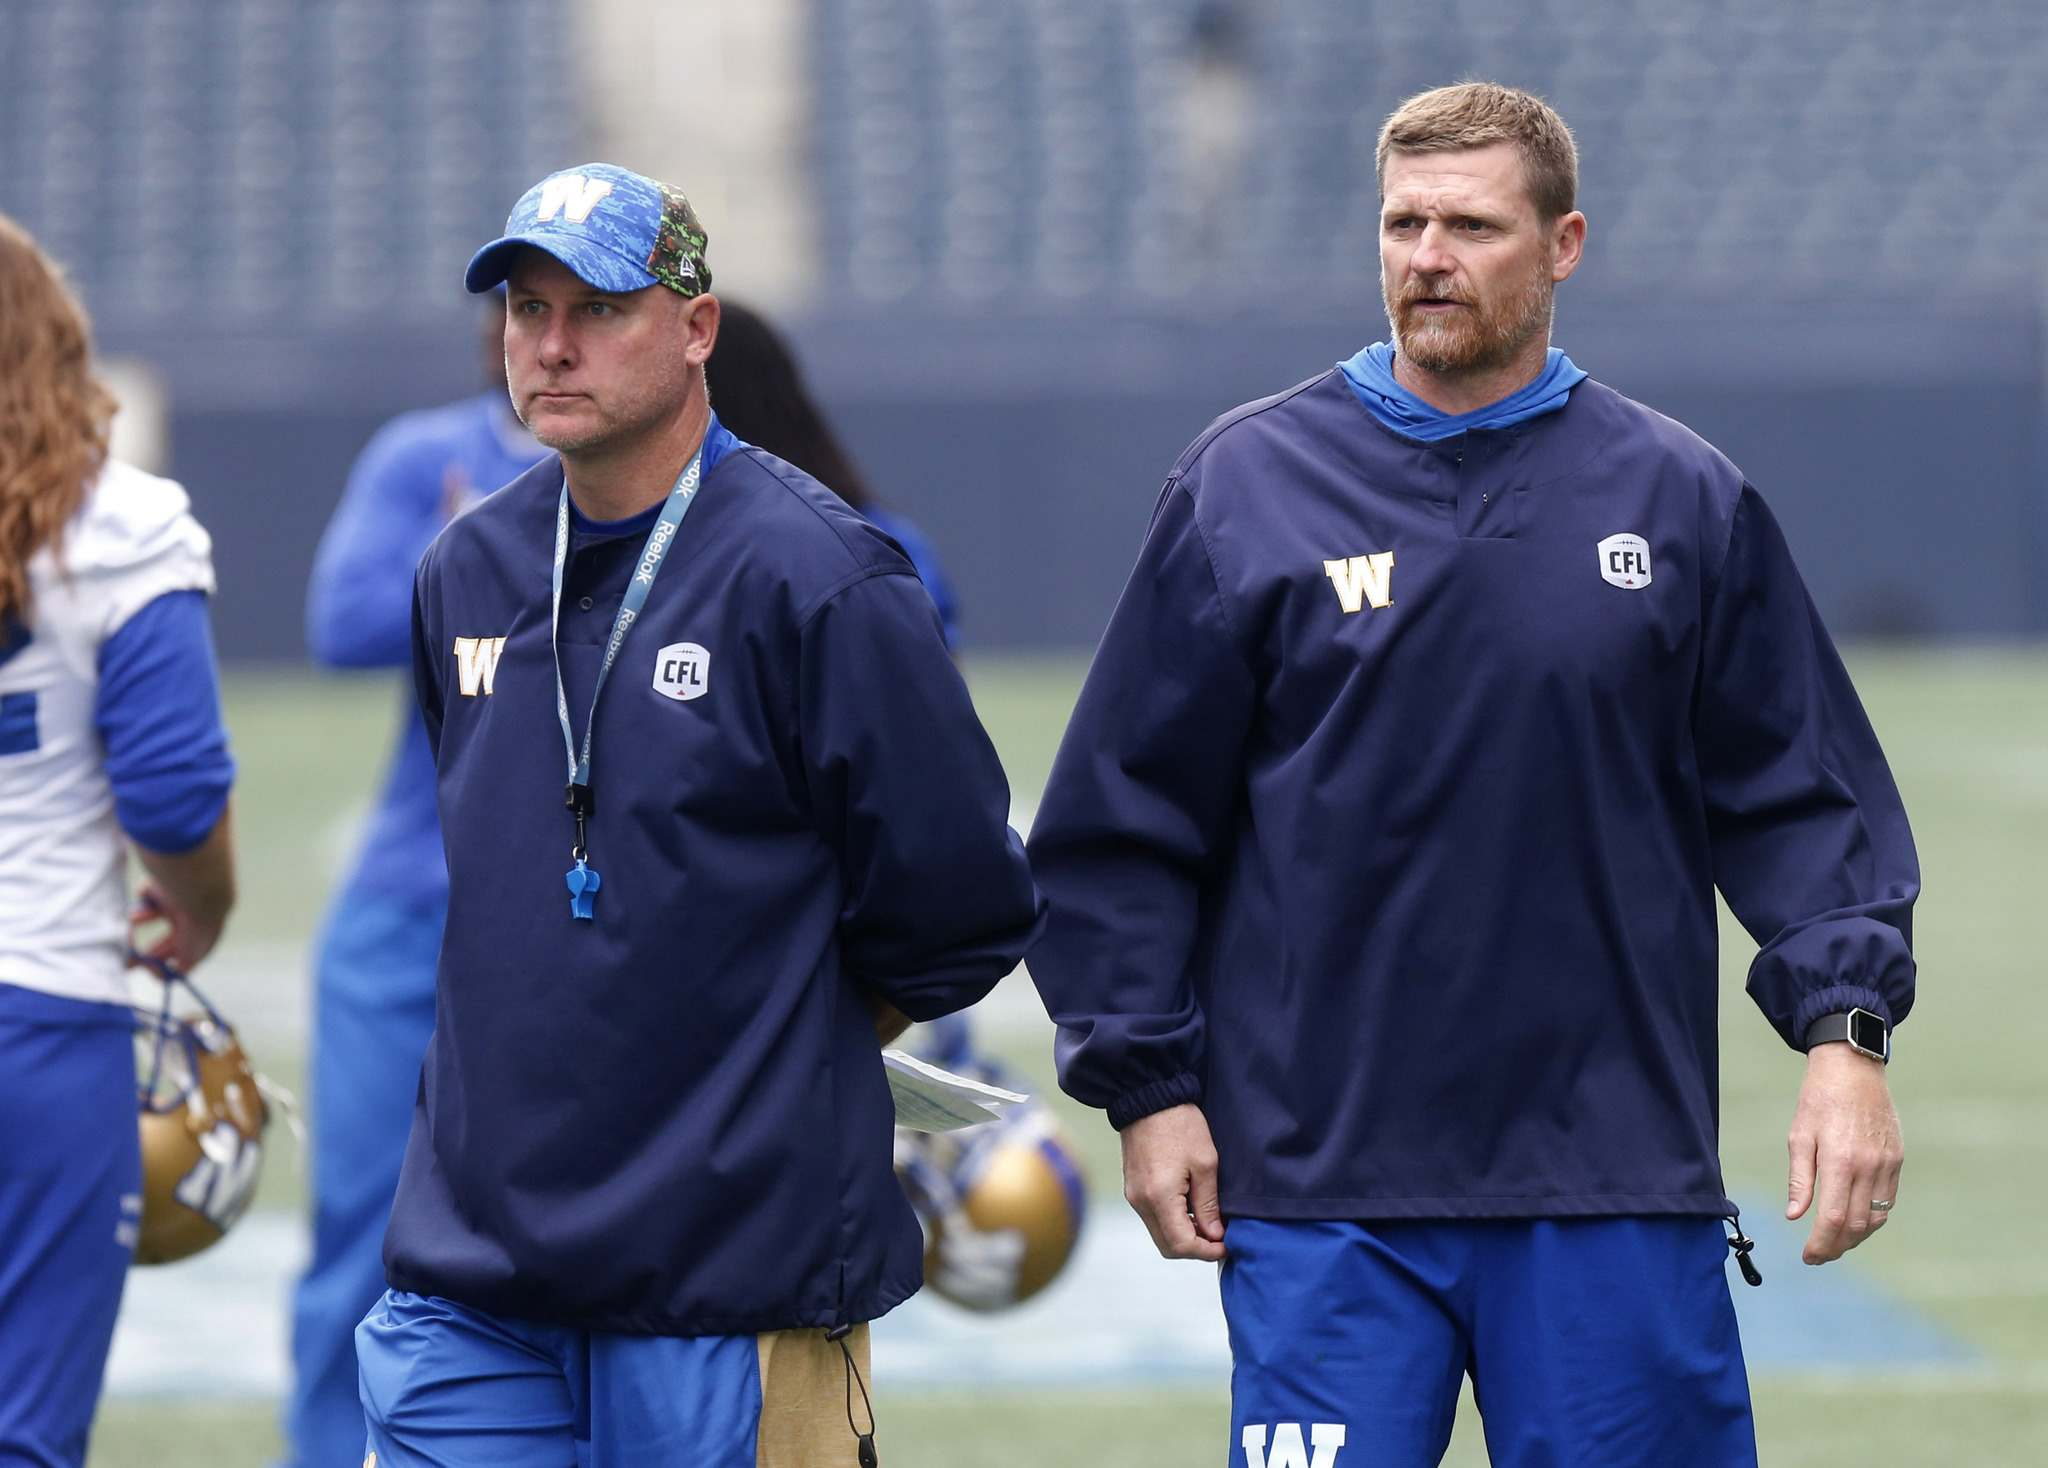 WAYNE GLOWACKI / WINNIPEG FREE PRESS FILES</p><p>Winnipeg Blue Bombers offensive coordinator Paul LaPolice and head coach Mike O'Shea are at IMG Academy in Bradenton, Fla to work out some of the team's American prospects in preparation for the start of Bombers training camp next month.</p>